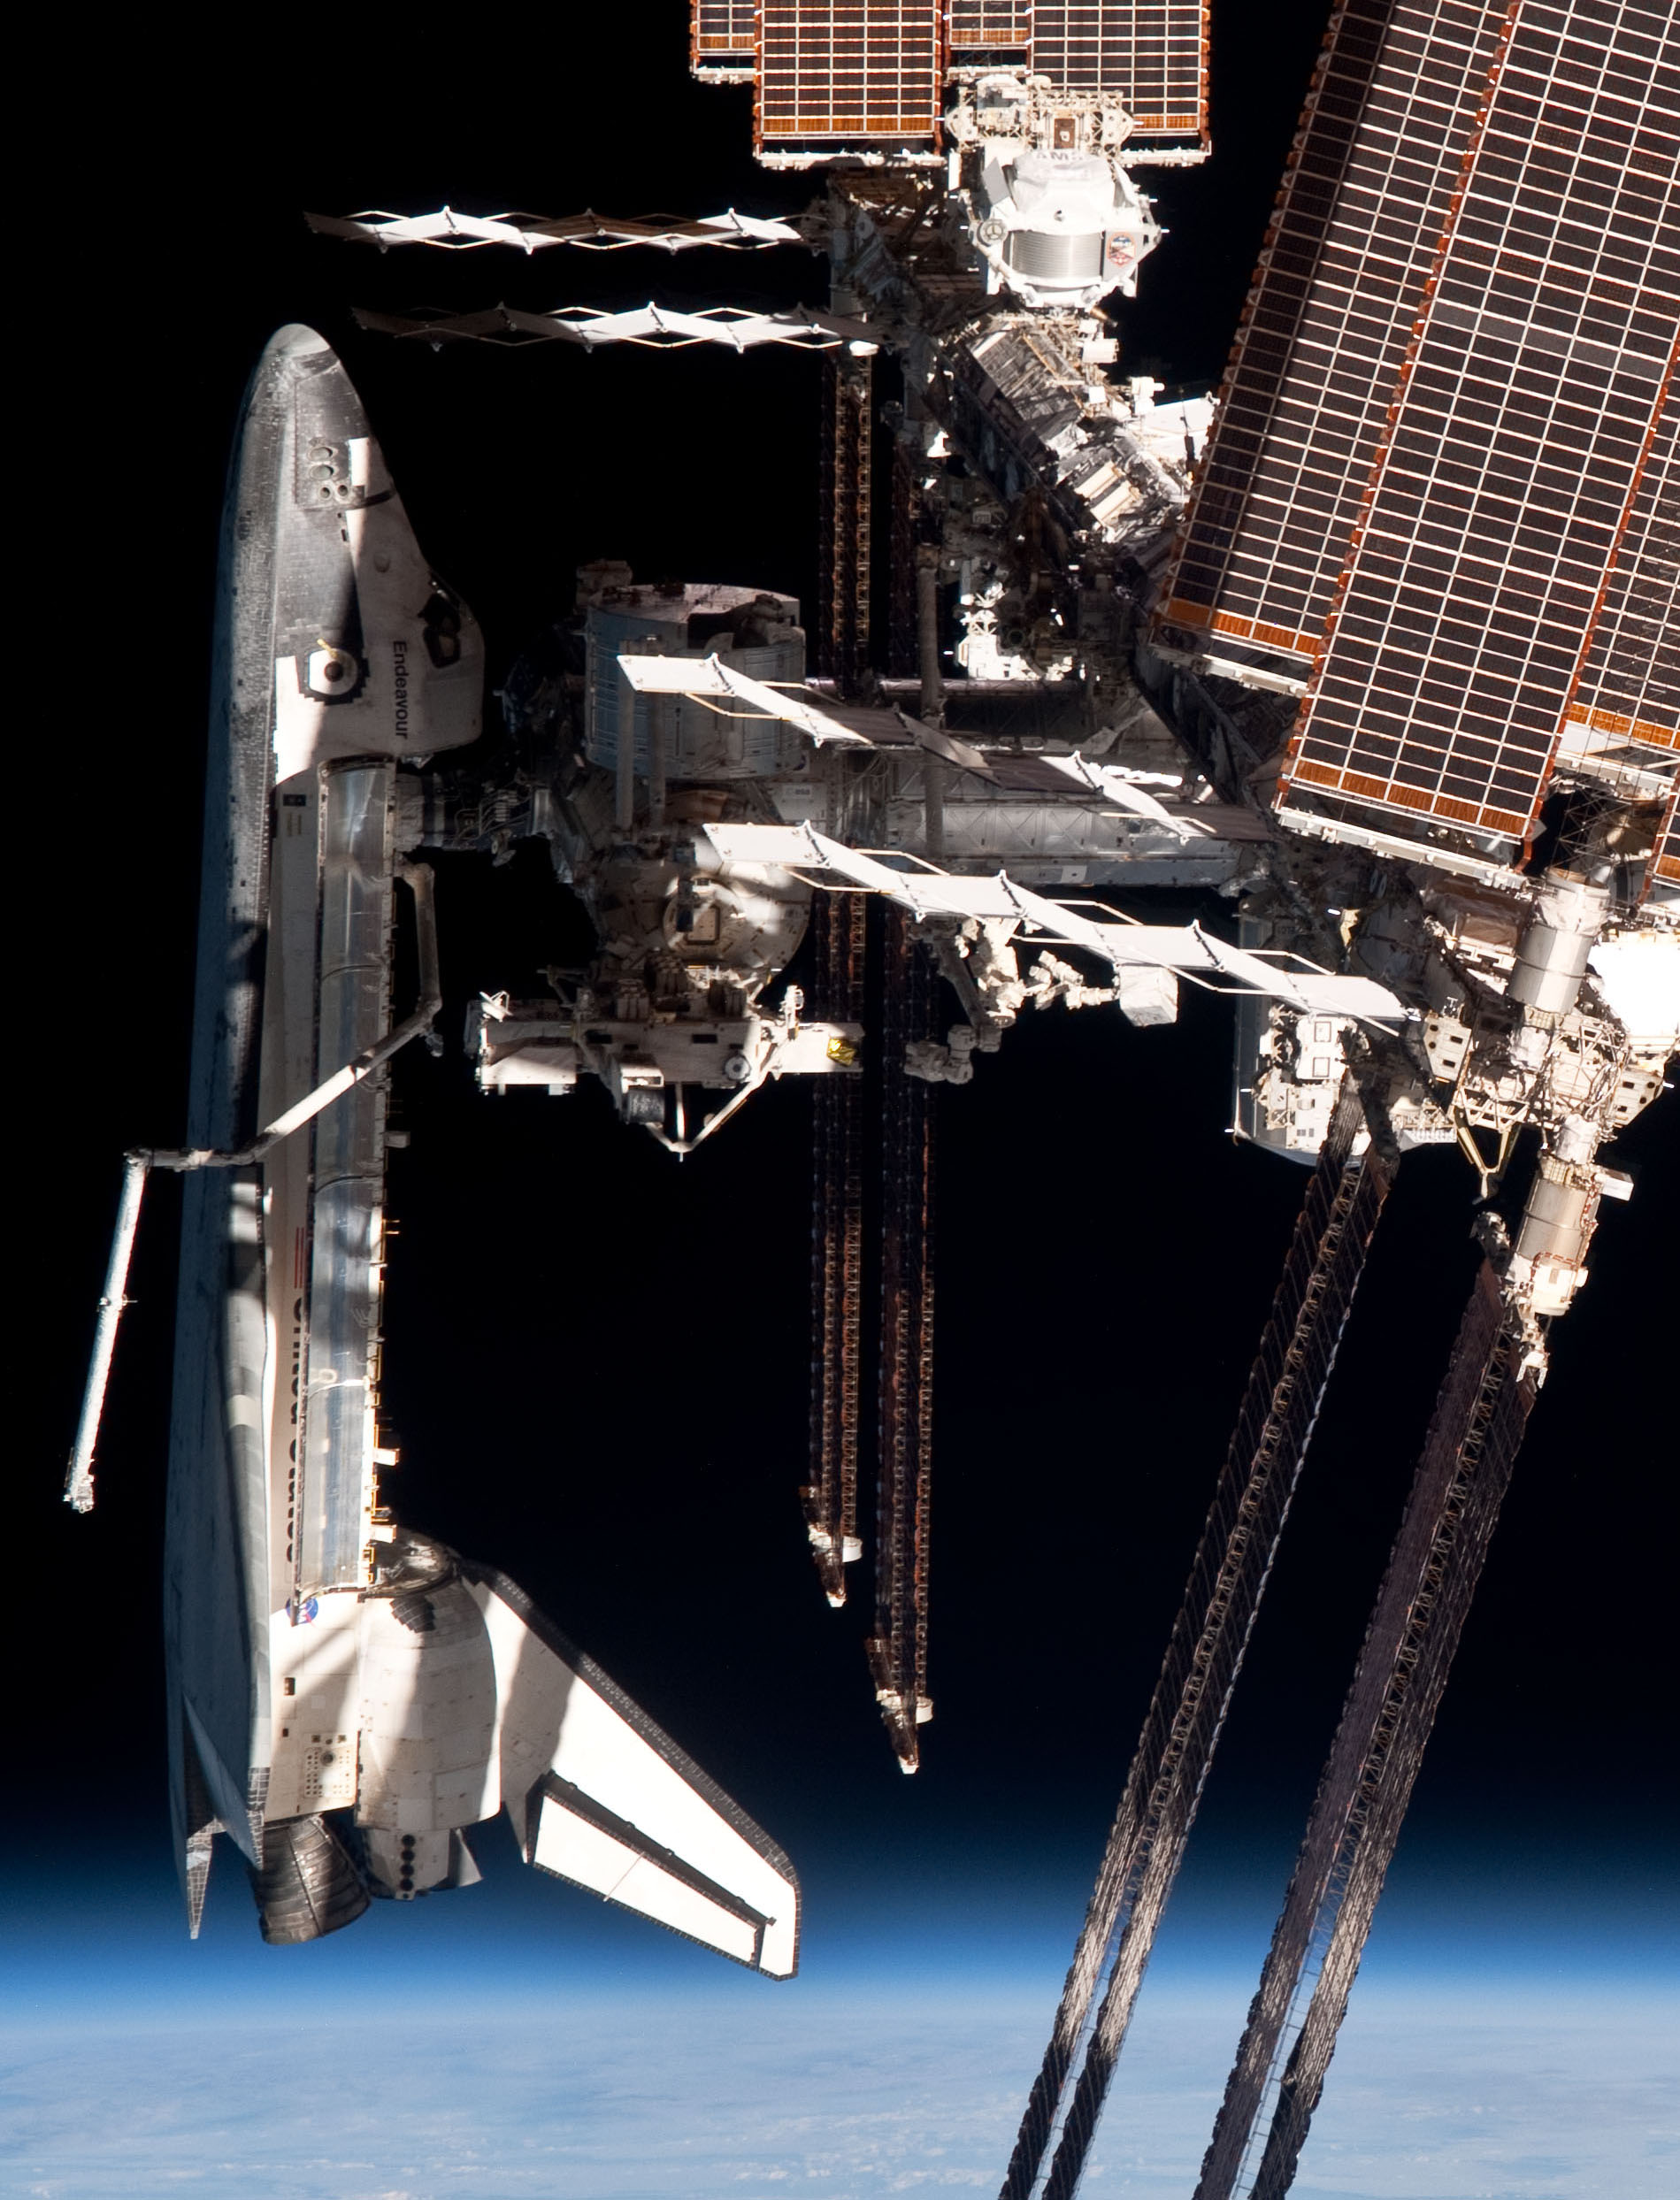 international space station shuttle - photo #29